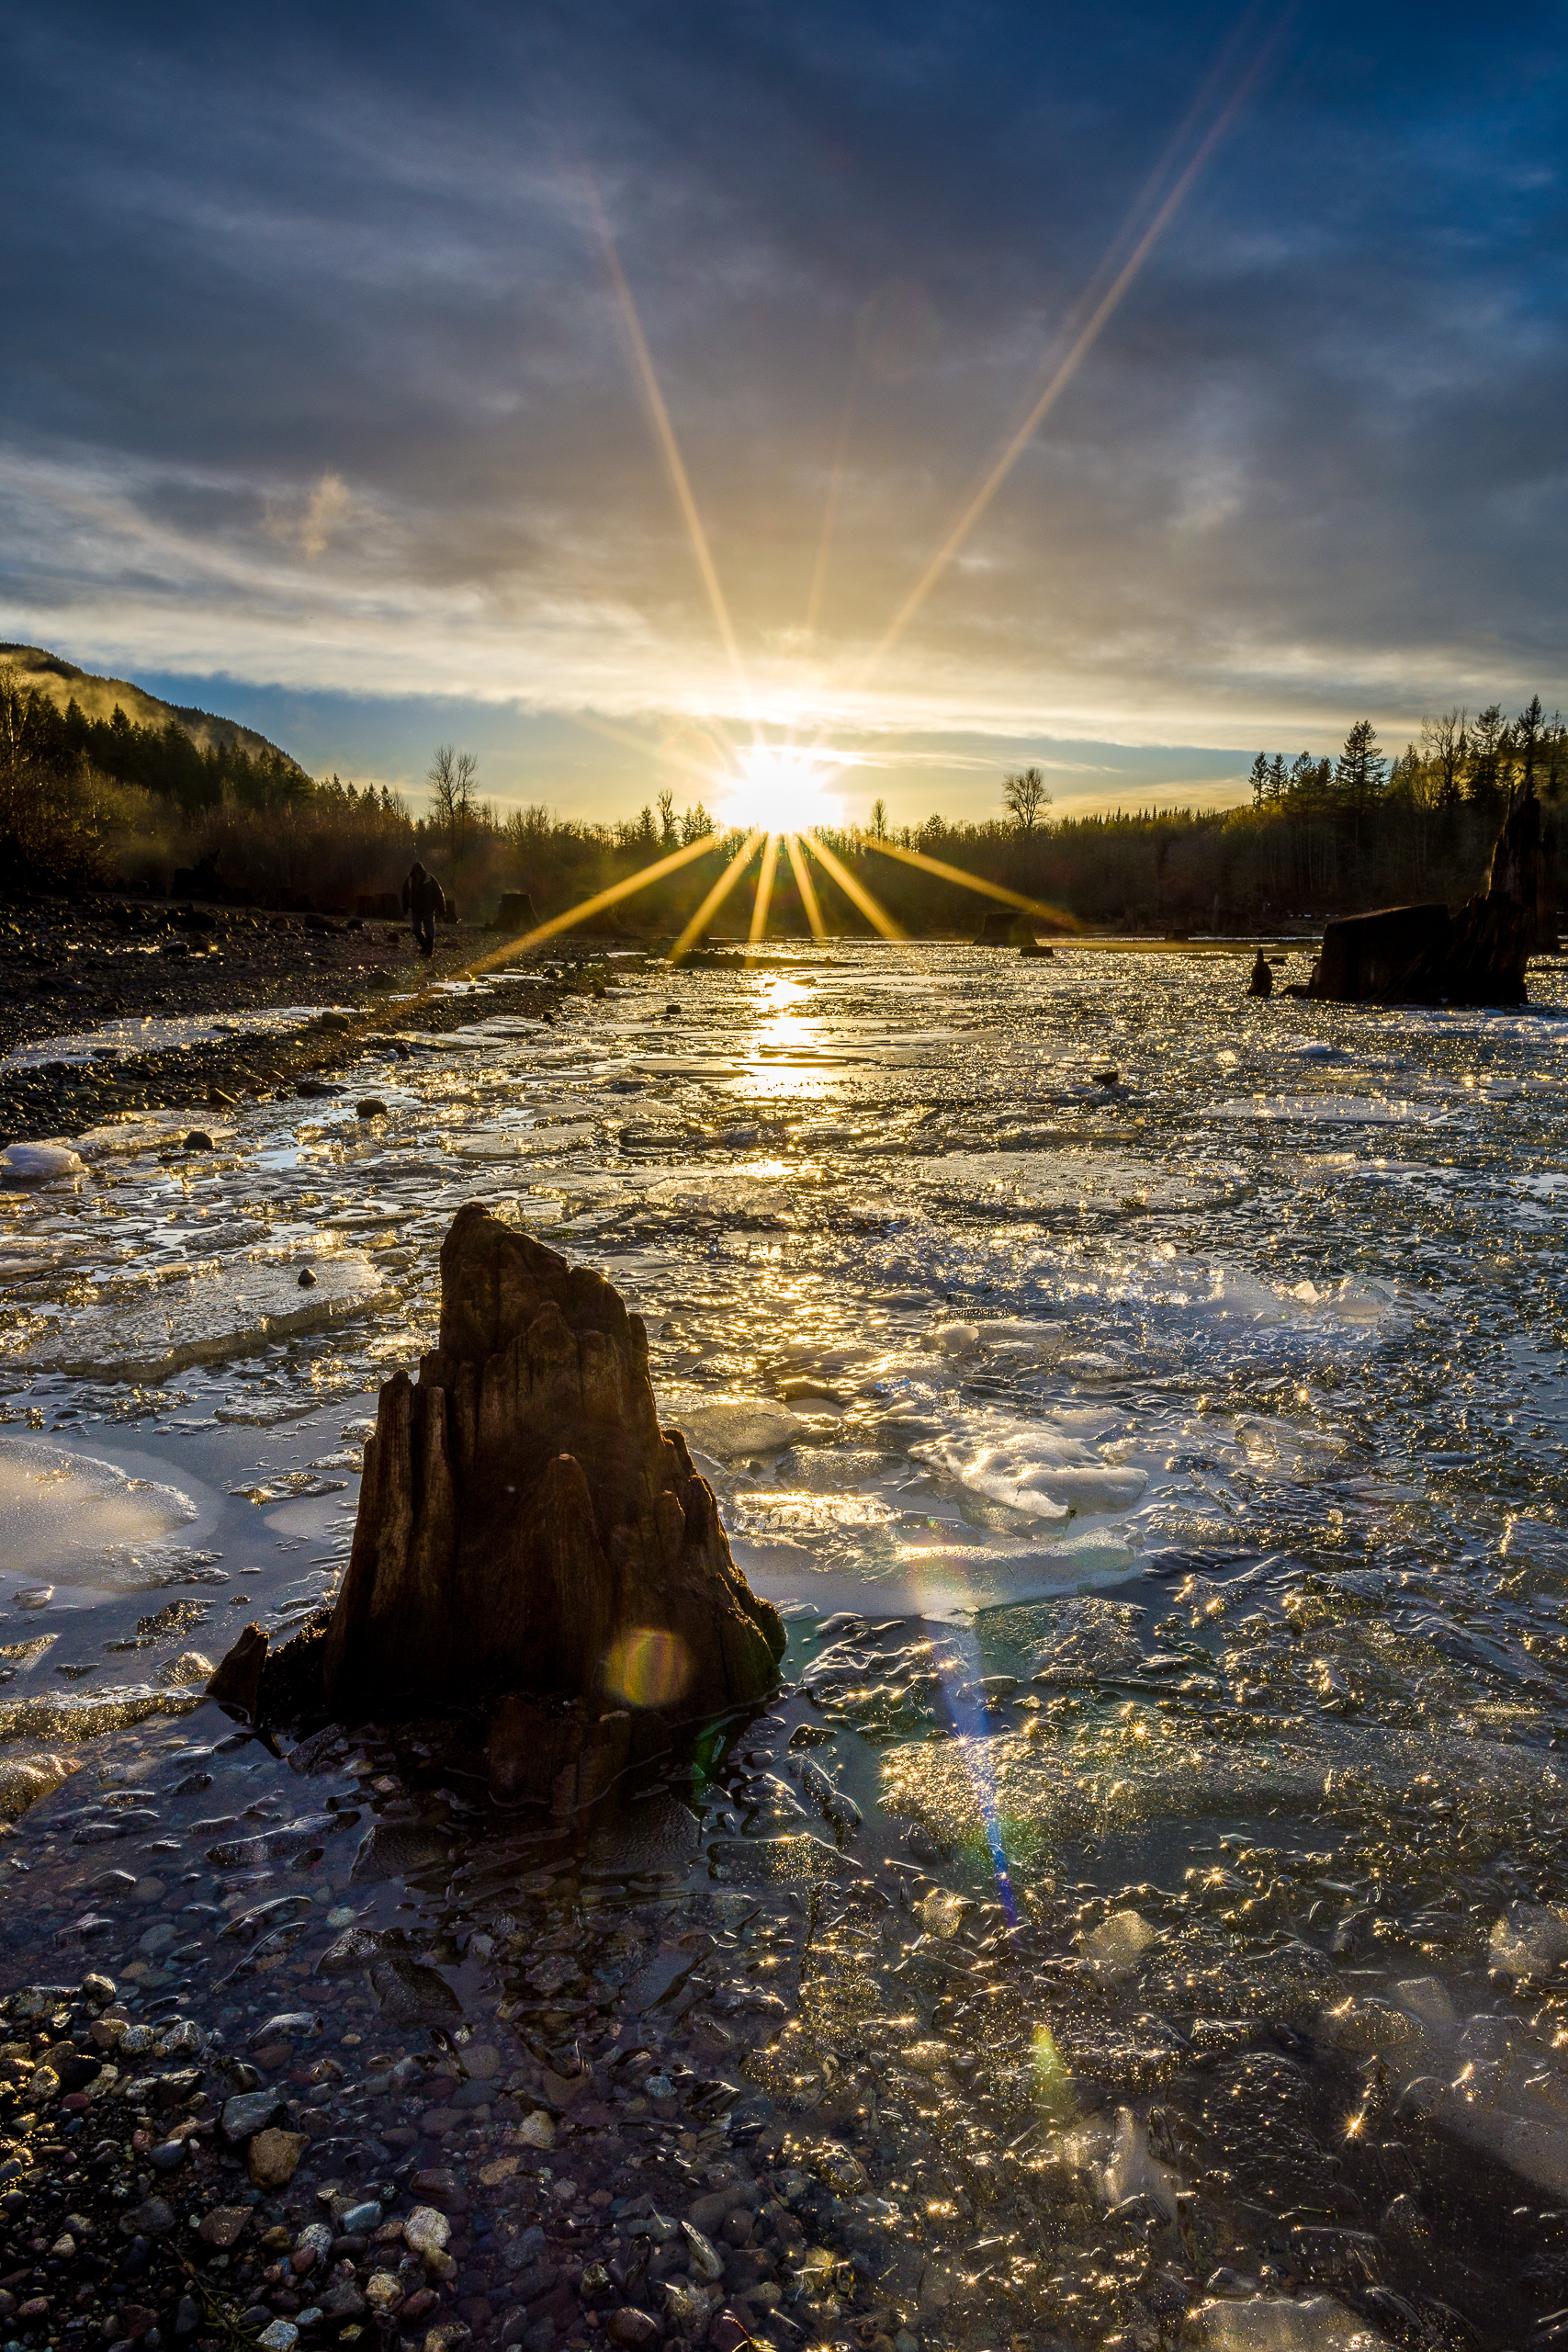 Rattlesnake Lake Ice and Sun Star  Photo by Kevin Ehlers - Nikon d810 + 20mm @ f22